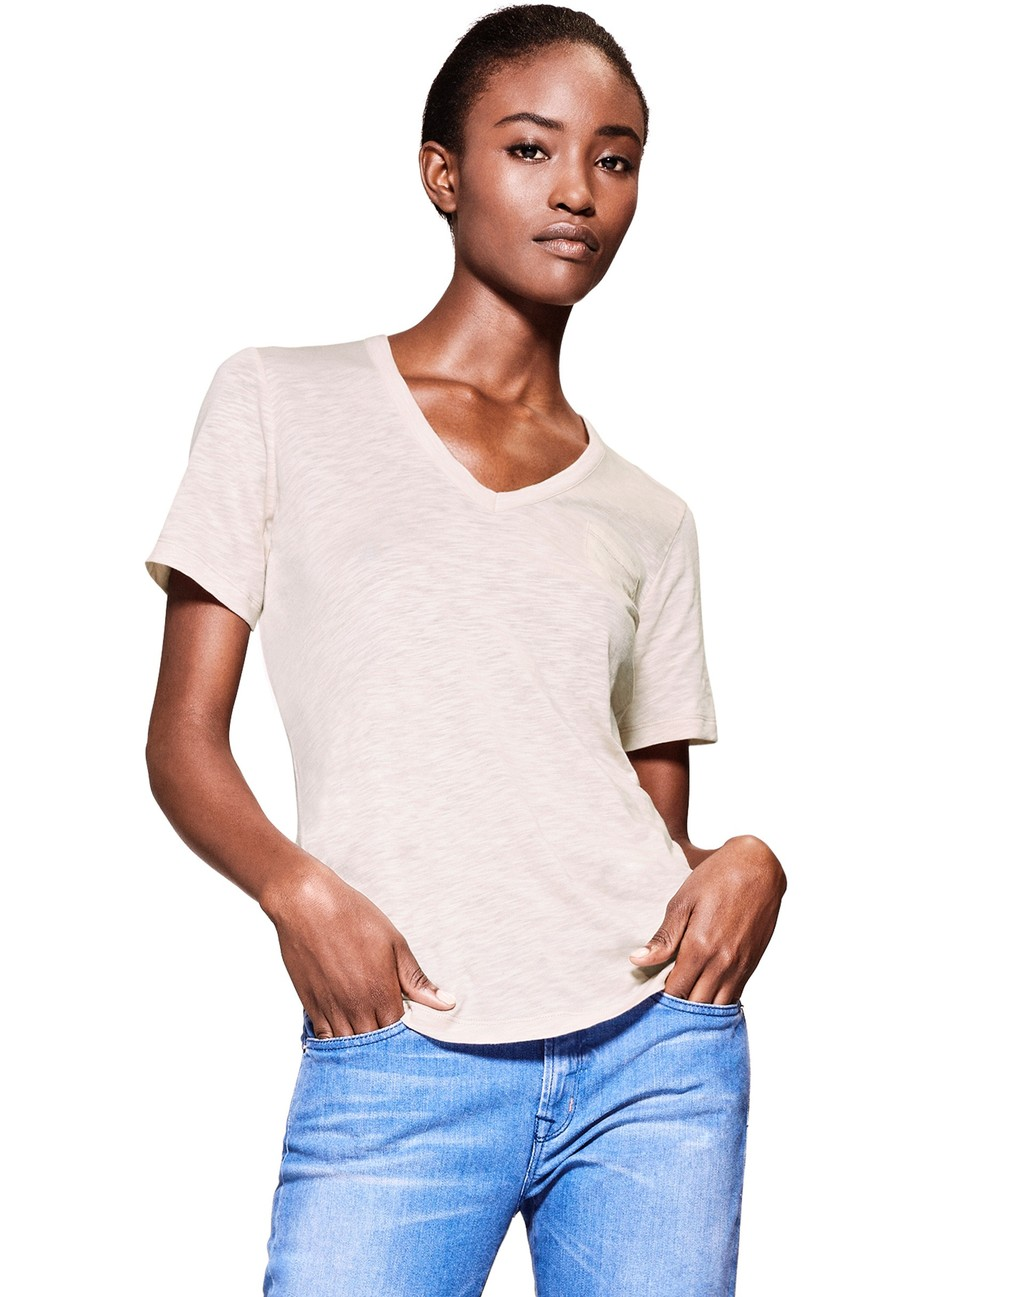 The Perfect V Neck Tee Blush - neckline: v-neck; pattern: plain; style: t-shirt; predominant colour: stone; occasions: casual; length: standard; fit: body skimming; sleeve length: short sleeve; sleeve style: standard; pattern type: fabric; texture group: jersey - stretchy/drapey; fibres: viscose/rayon - mix; season: s/s 2016; wardrobe: basic